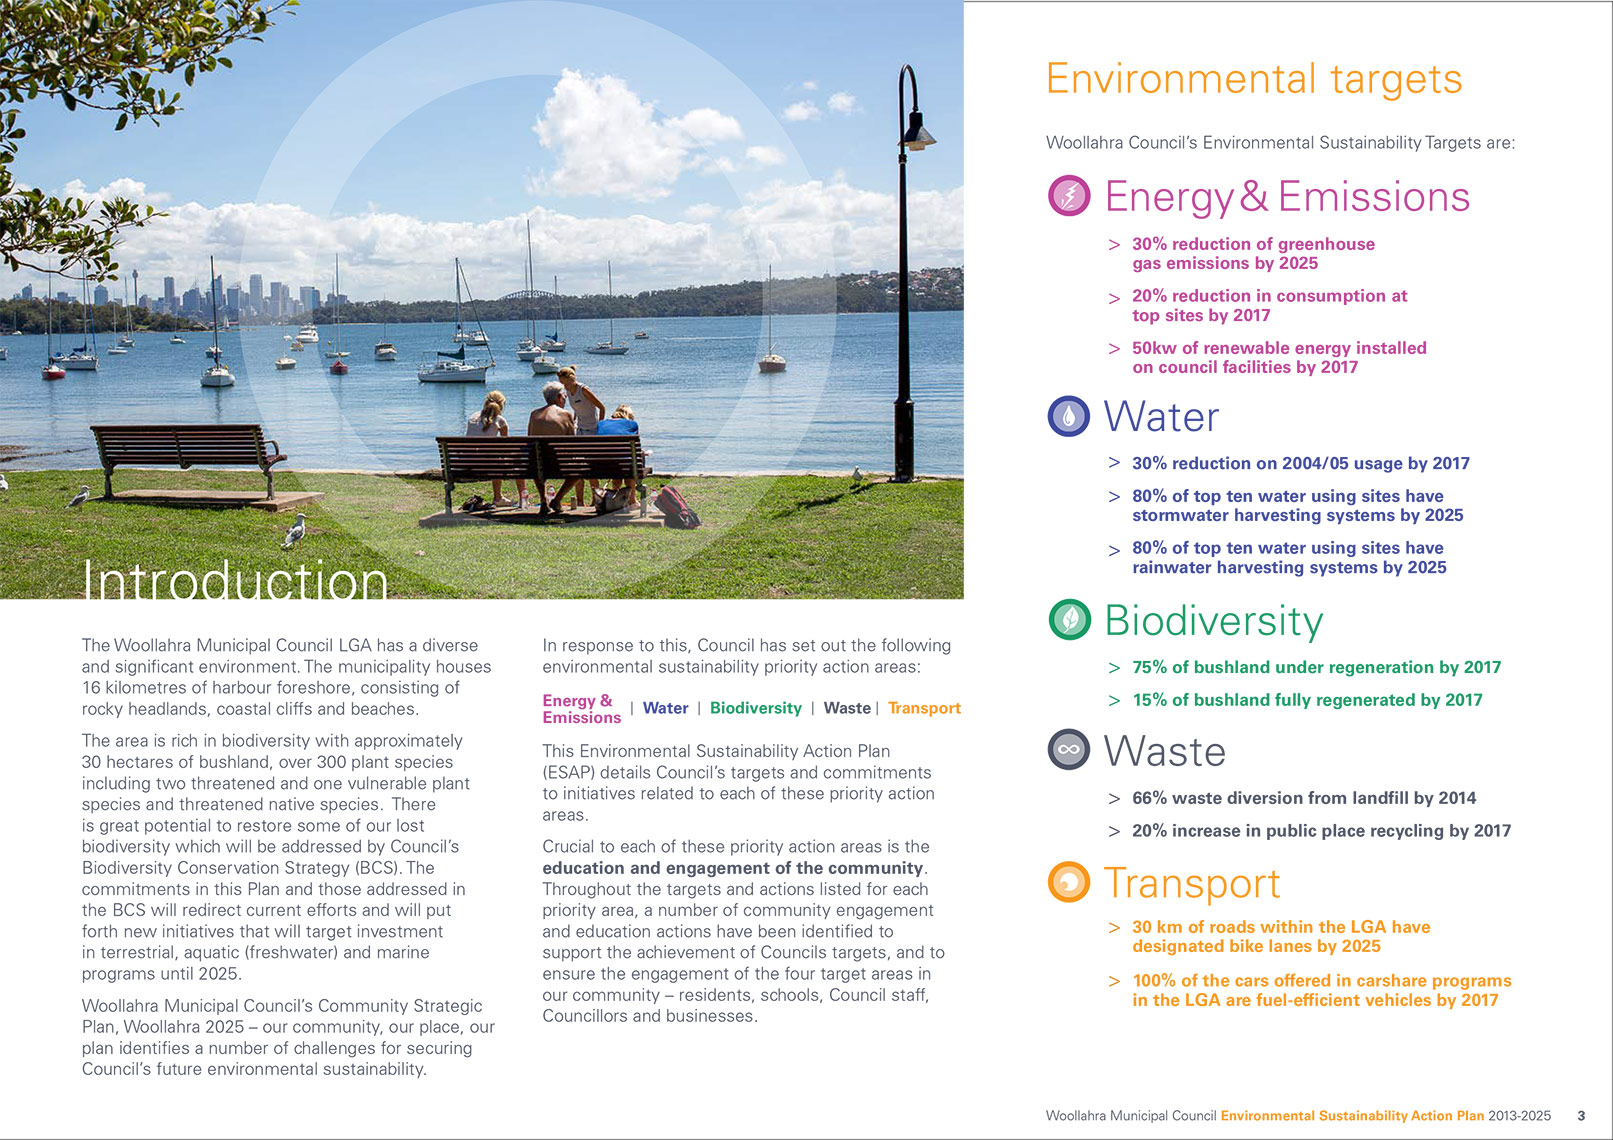 p3 Woollahra_ESAP (cover) Sustainable environmental communication design